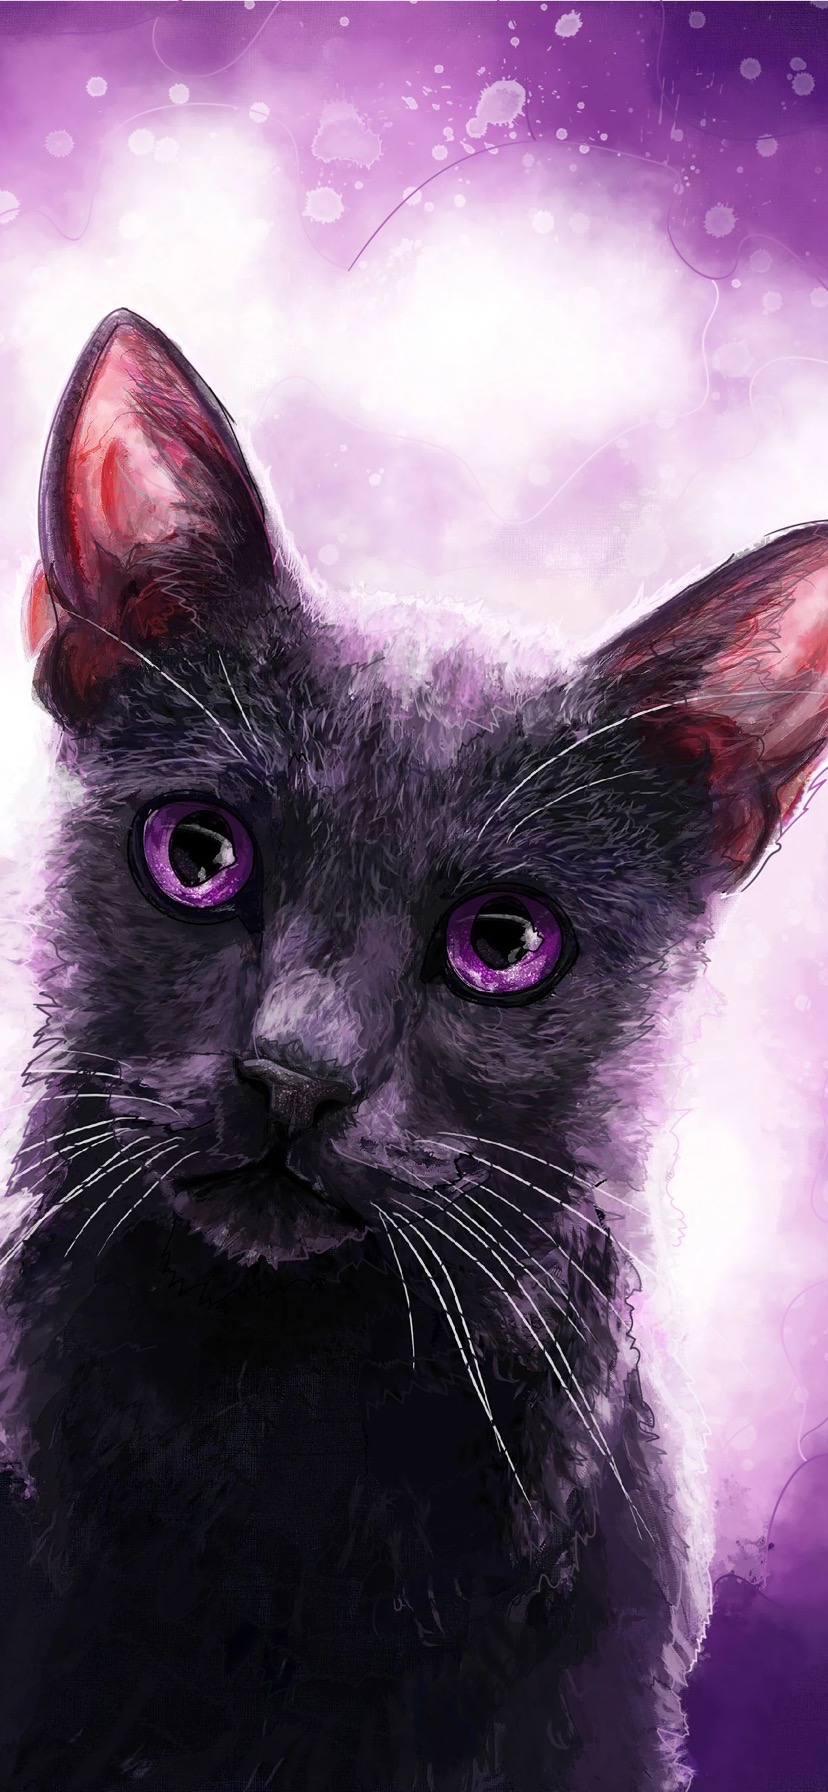 Cat with purple eyes